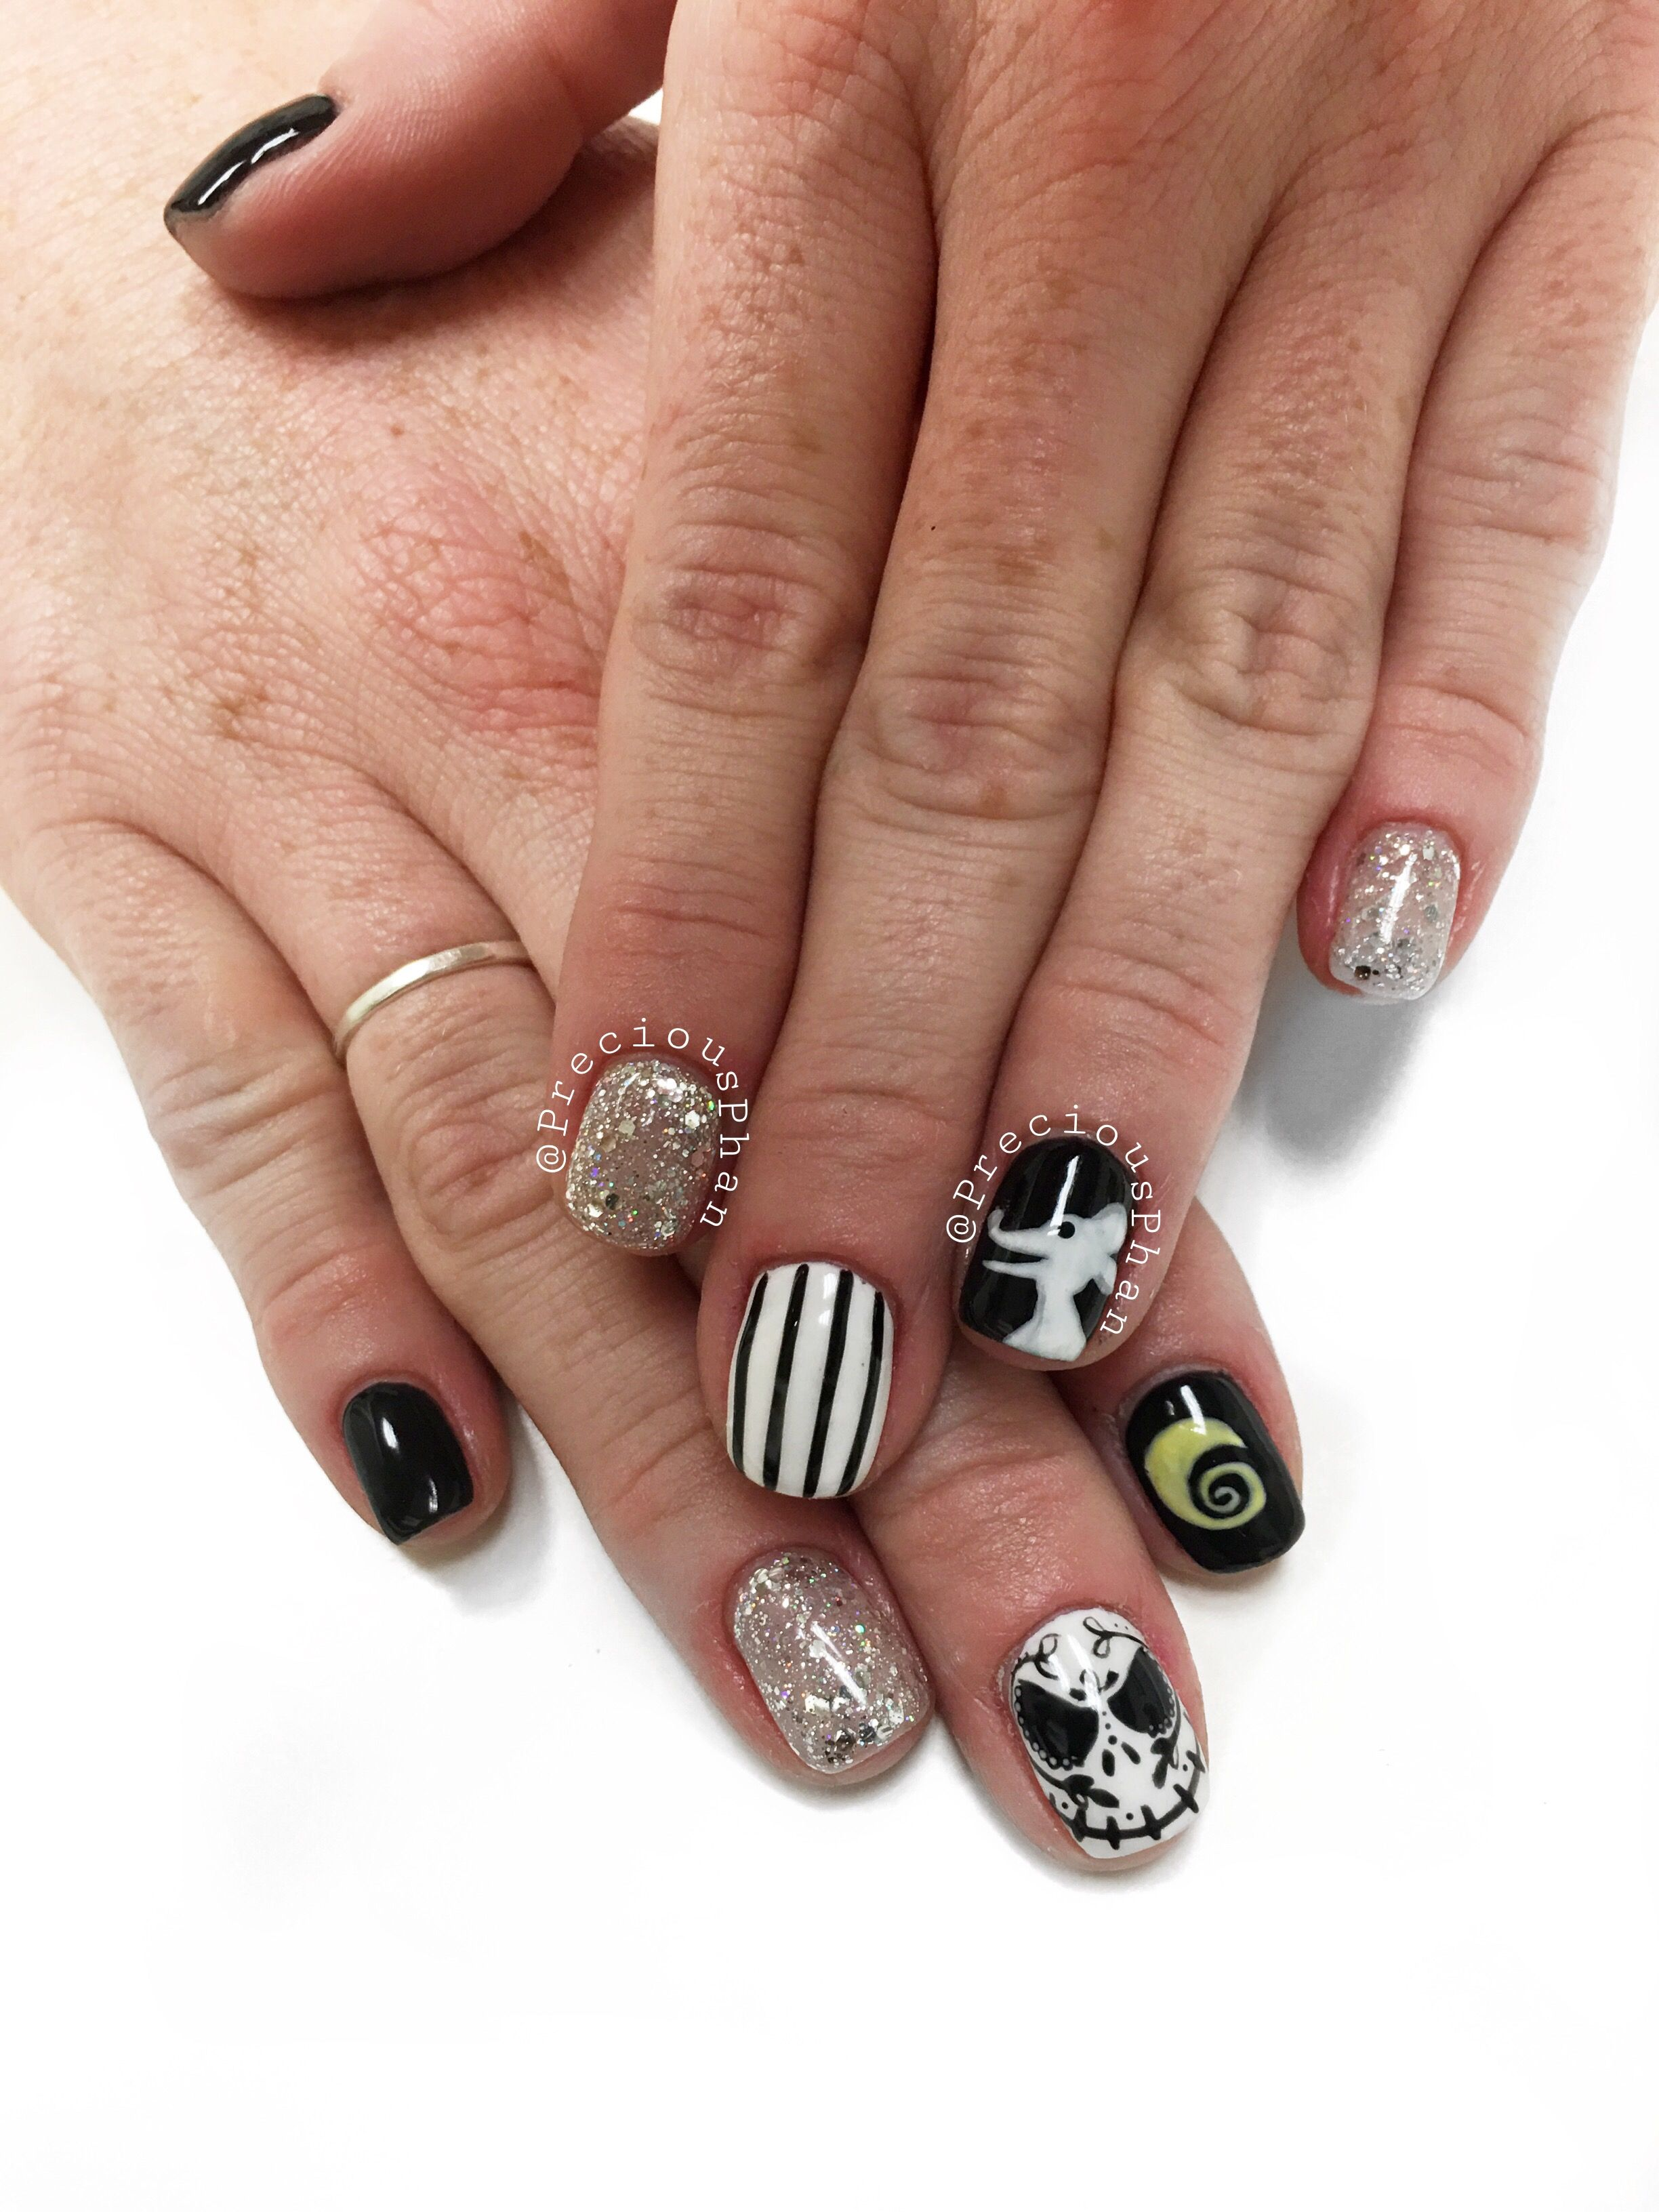 Jack skellington. The nightmare before Christmas nails ...